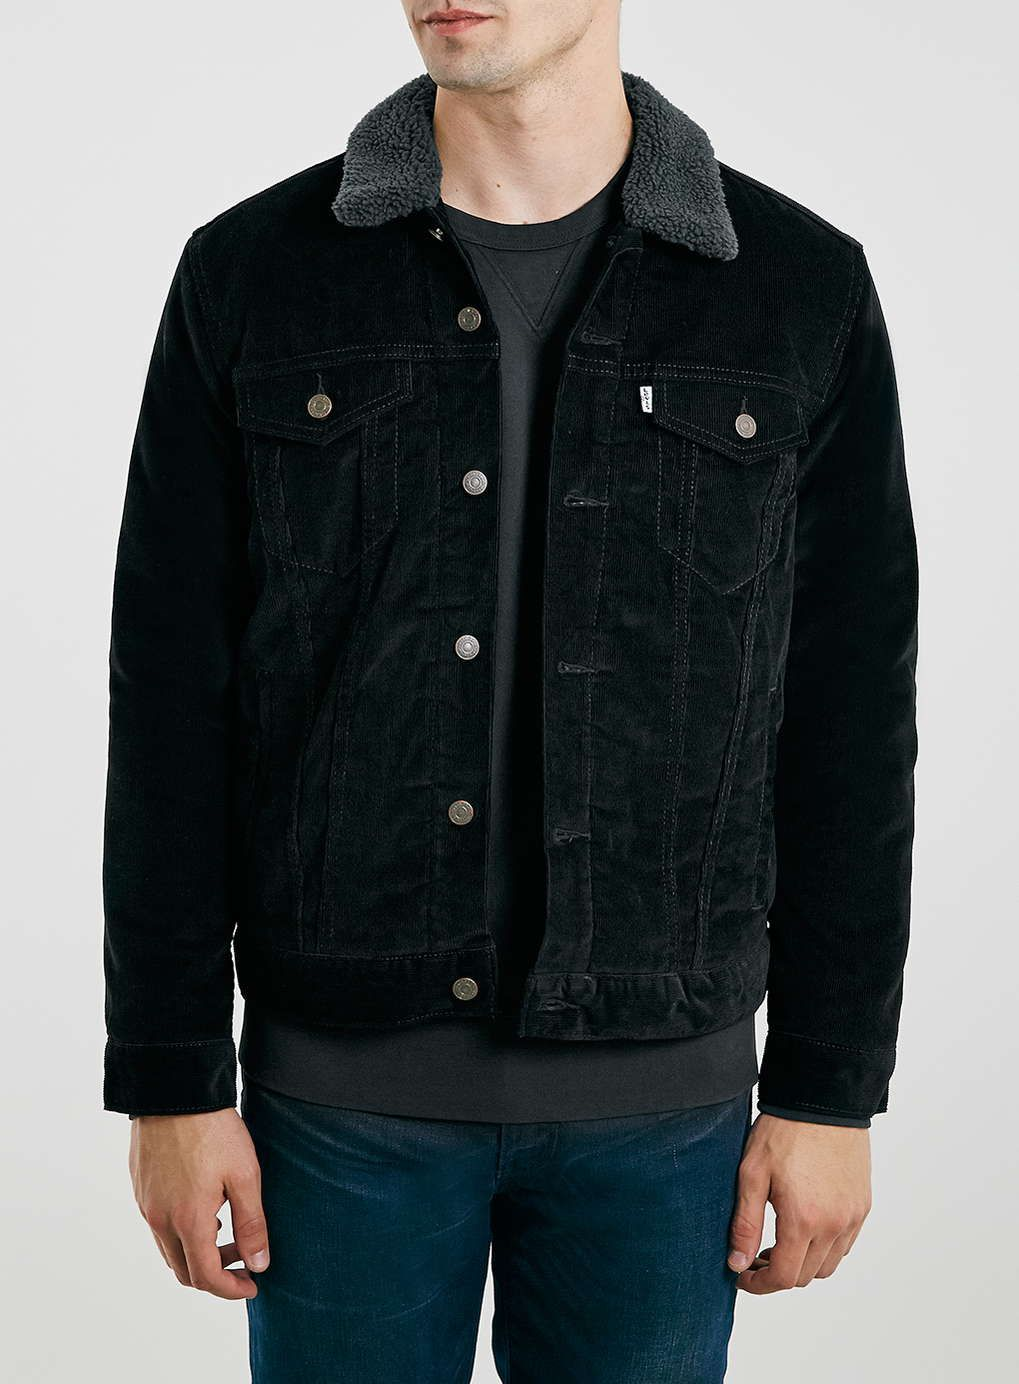 Levi's black needlepoint corduroy jacket with dark grey borg